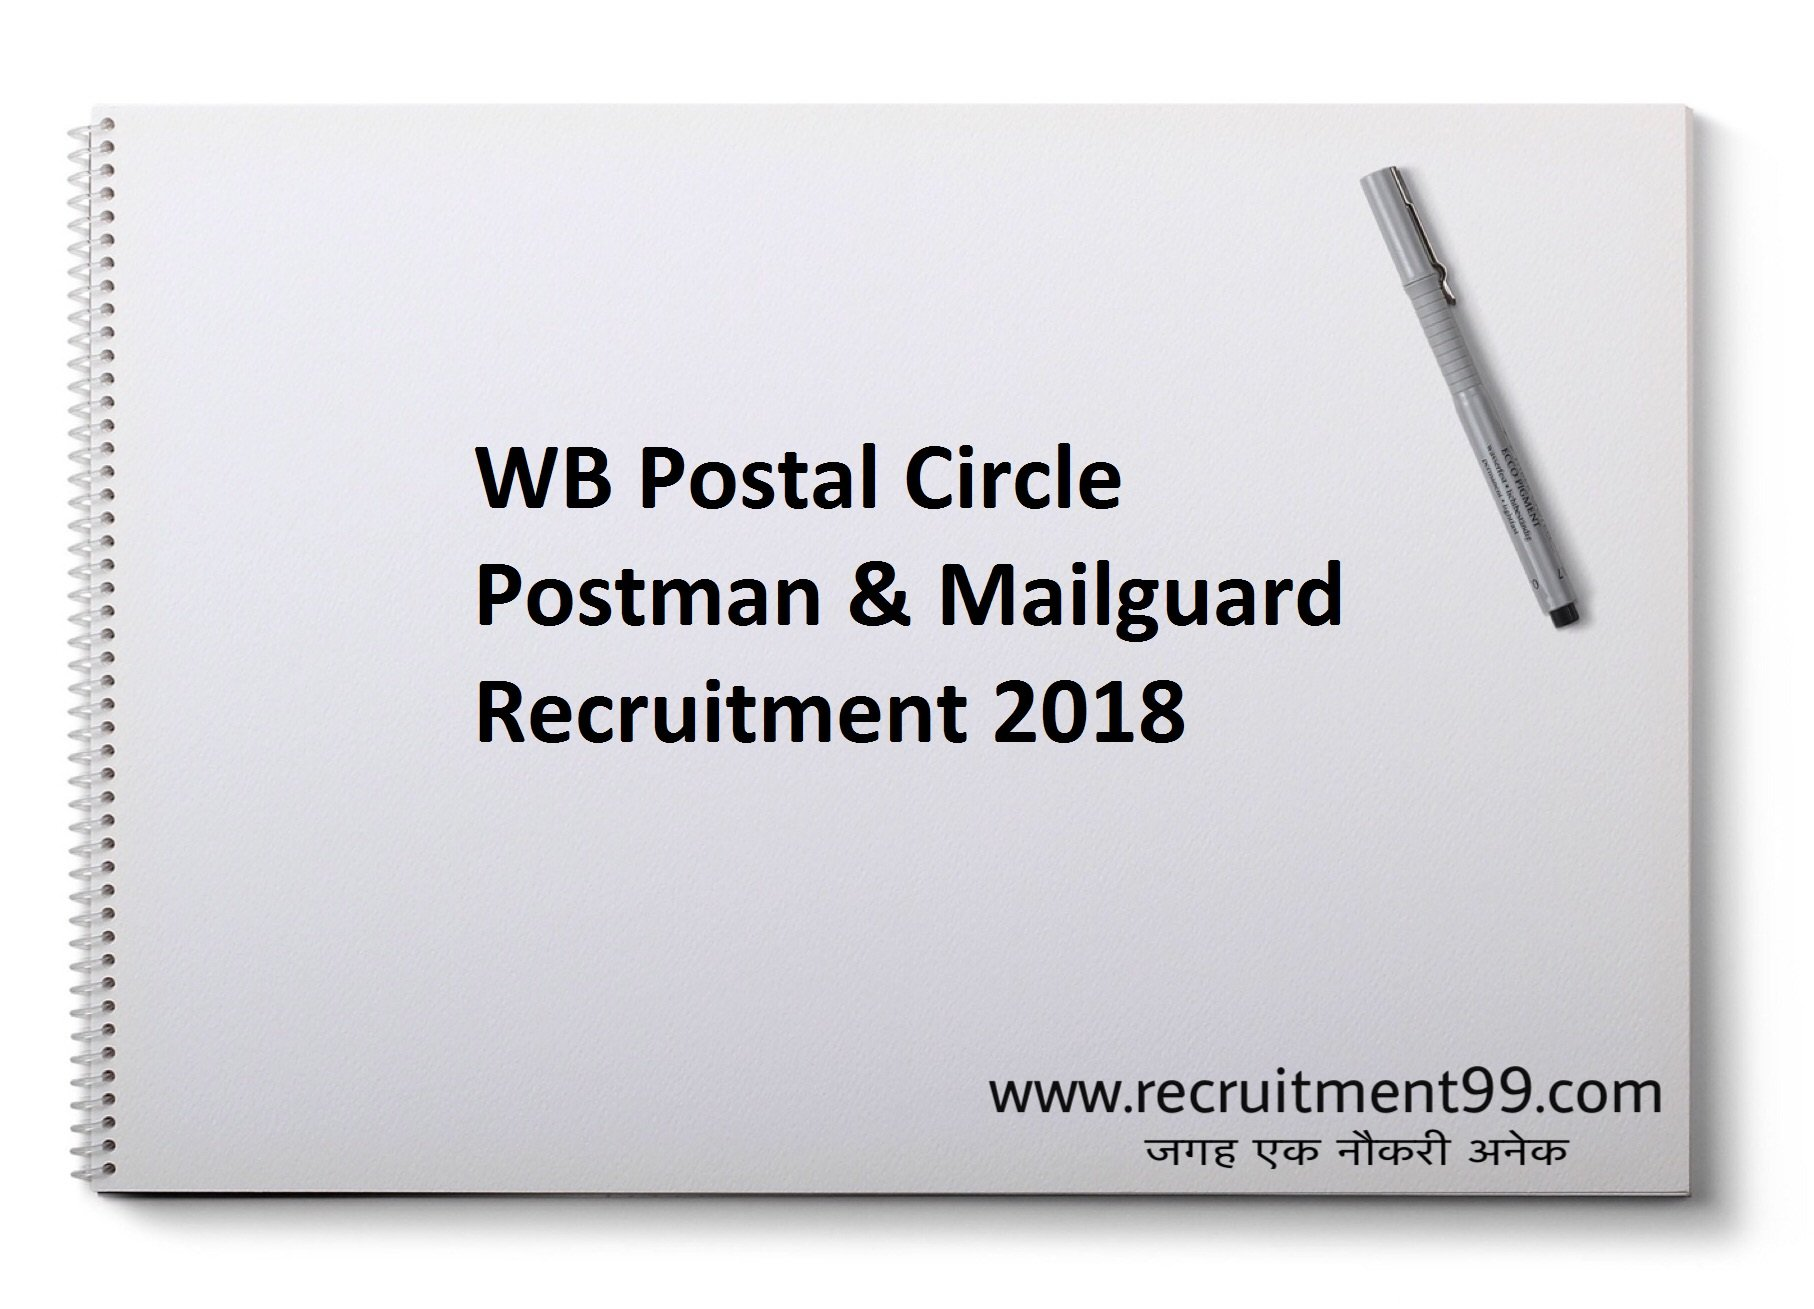 WB Postal Circle Postman Mailguard Recruitment Admit Card Result 2018